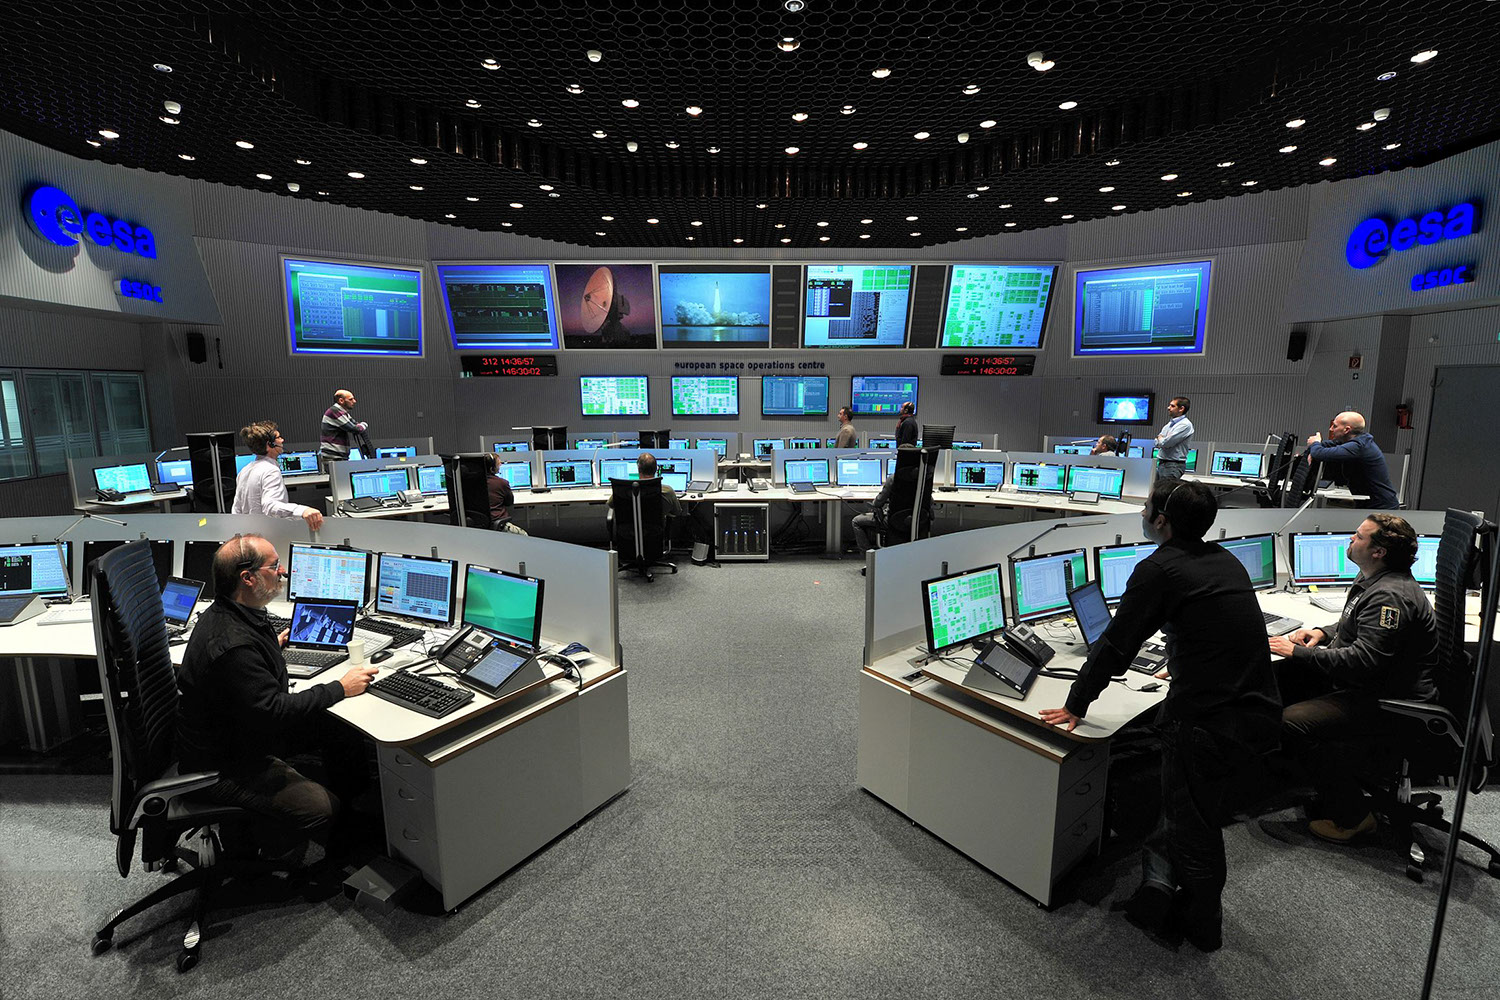 Control room of the esa space station